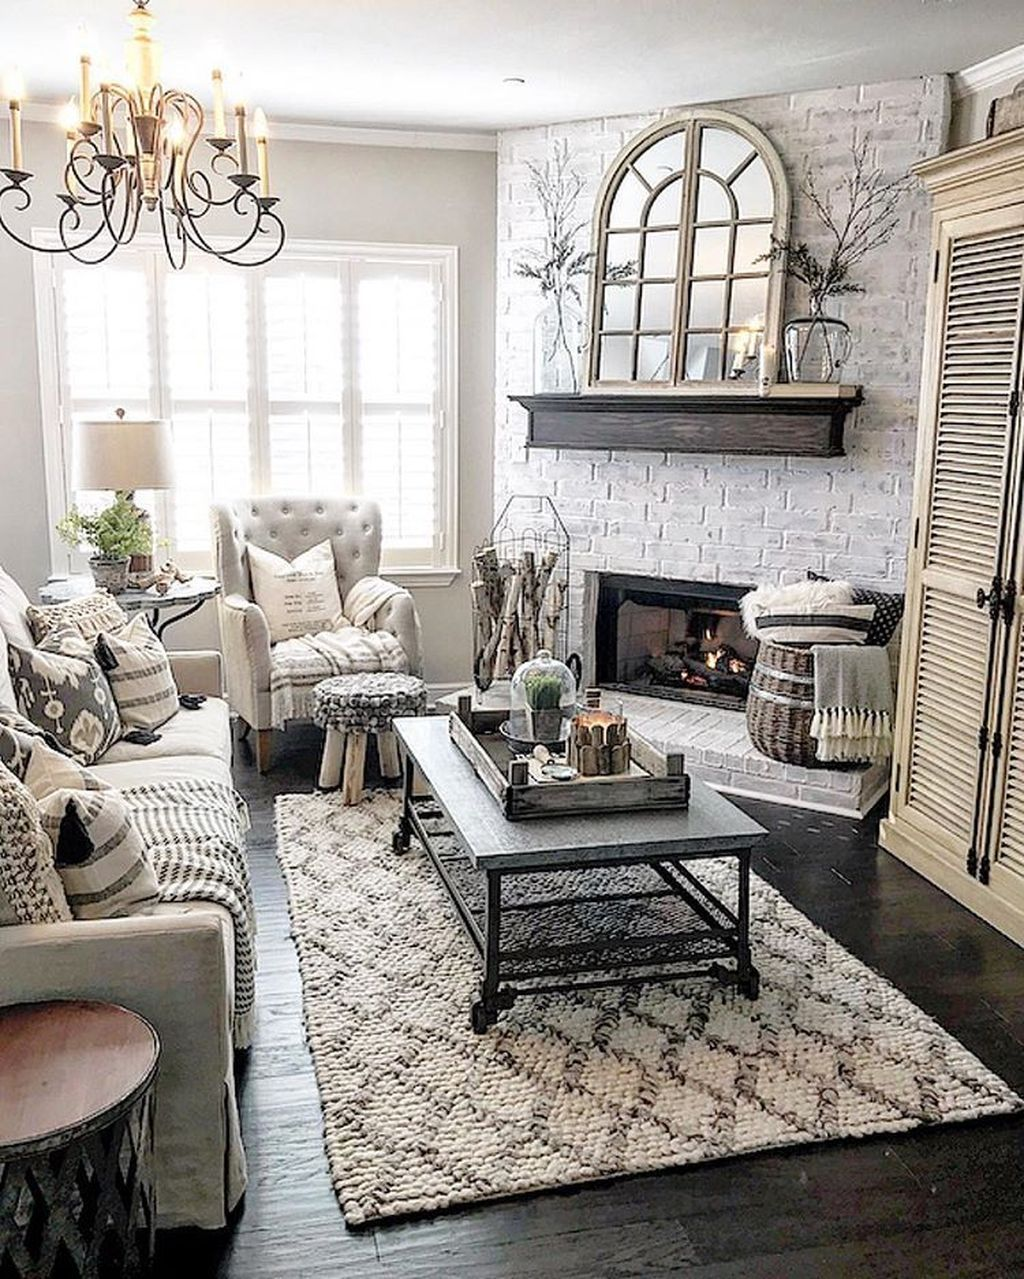 Amazing Living Room Design Ideas With Corner Fireplace That